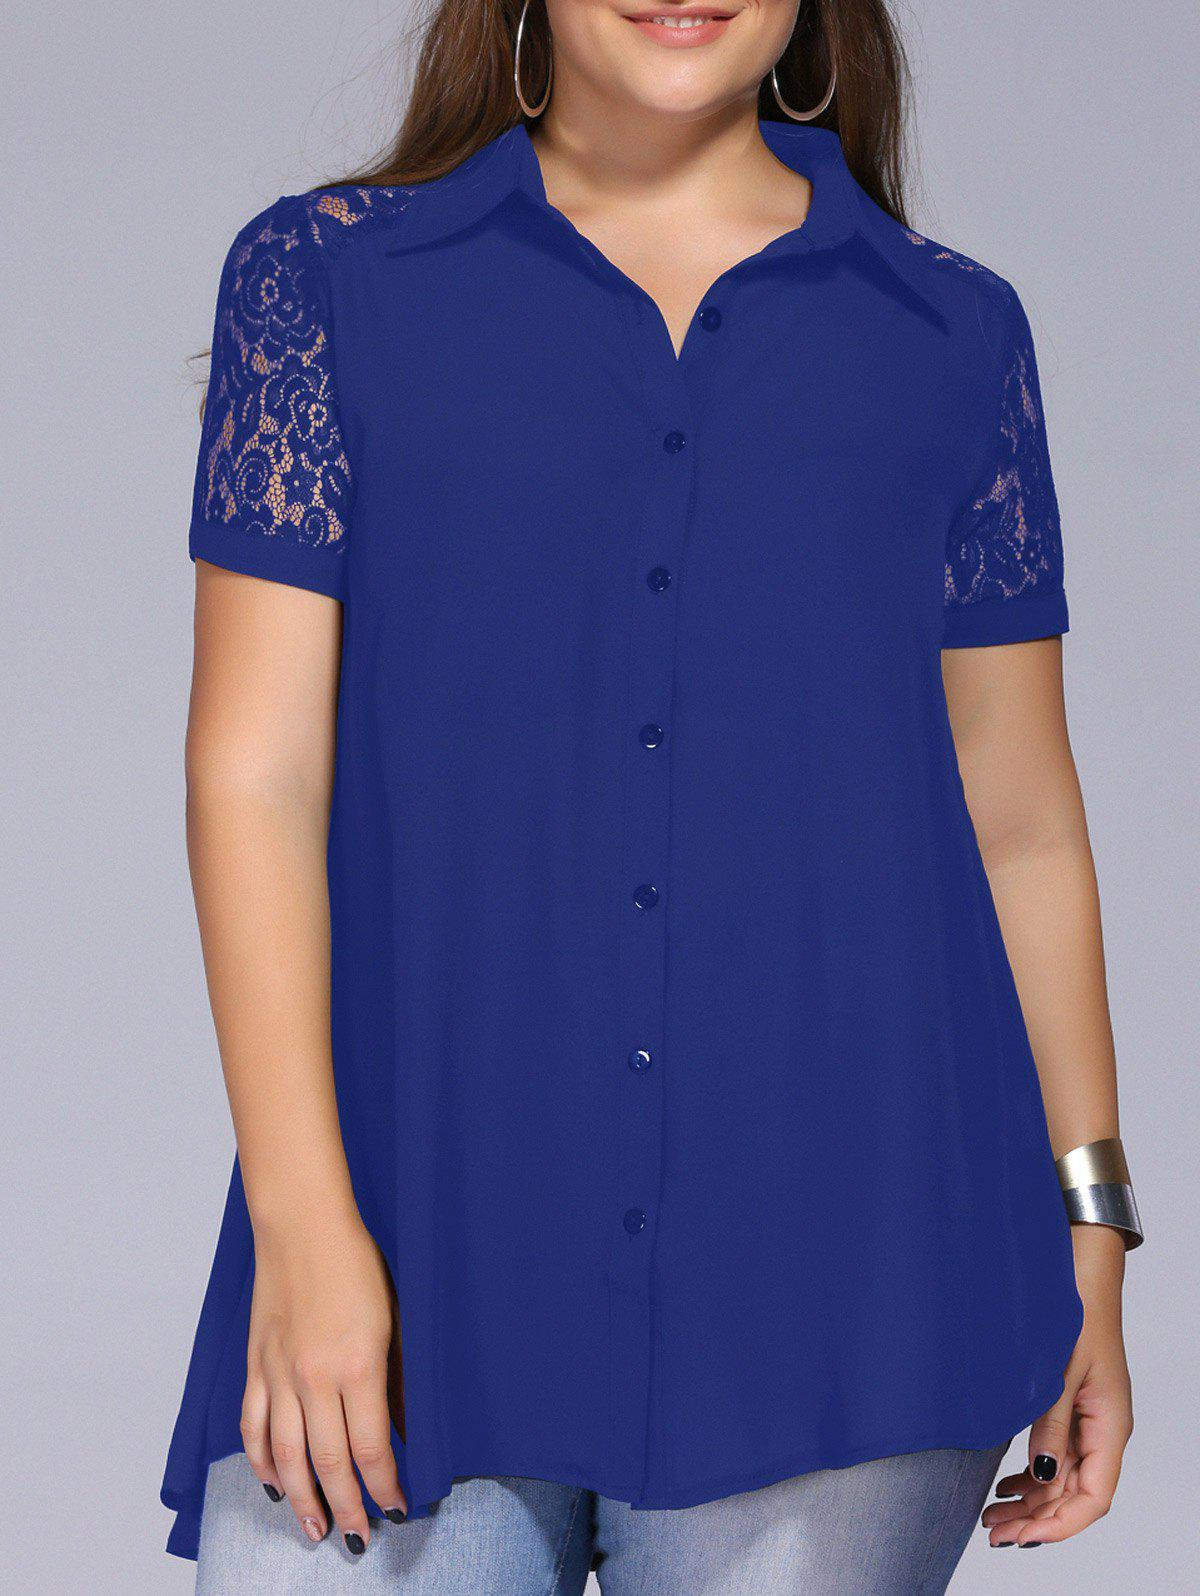 Lace Trim Plus Size Blouse - BLUE 2XL